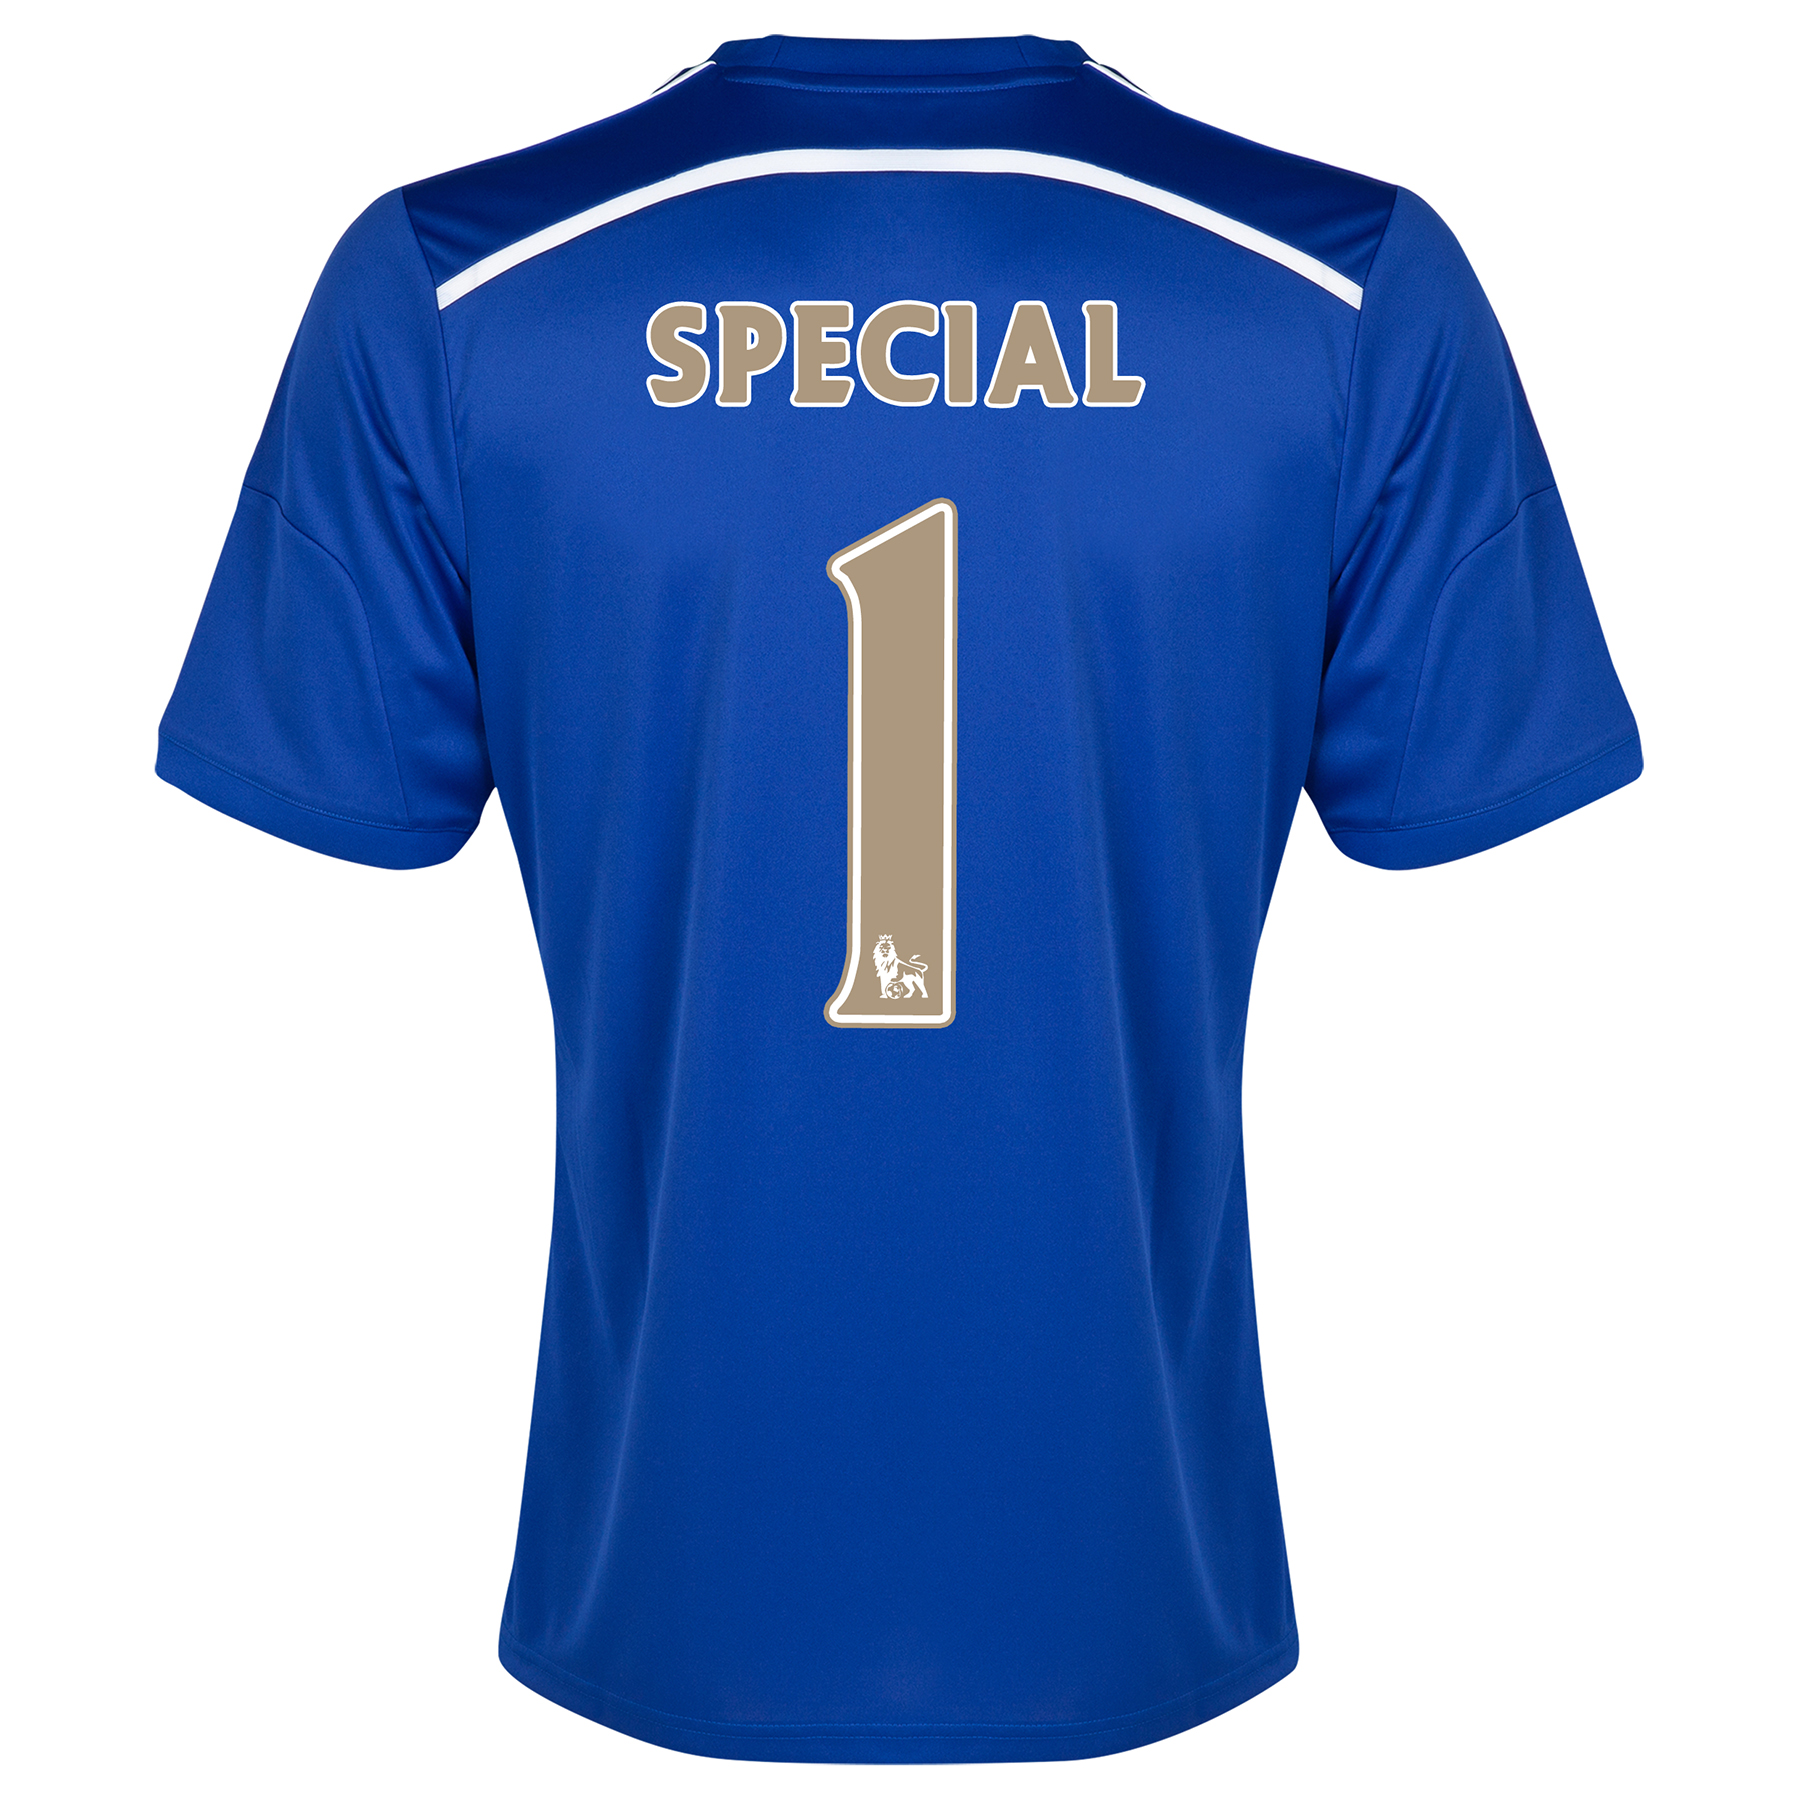 Chelsea Special 1 Champions Shirt - Outsize